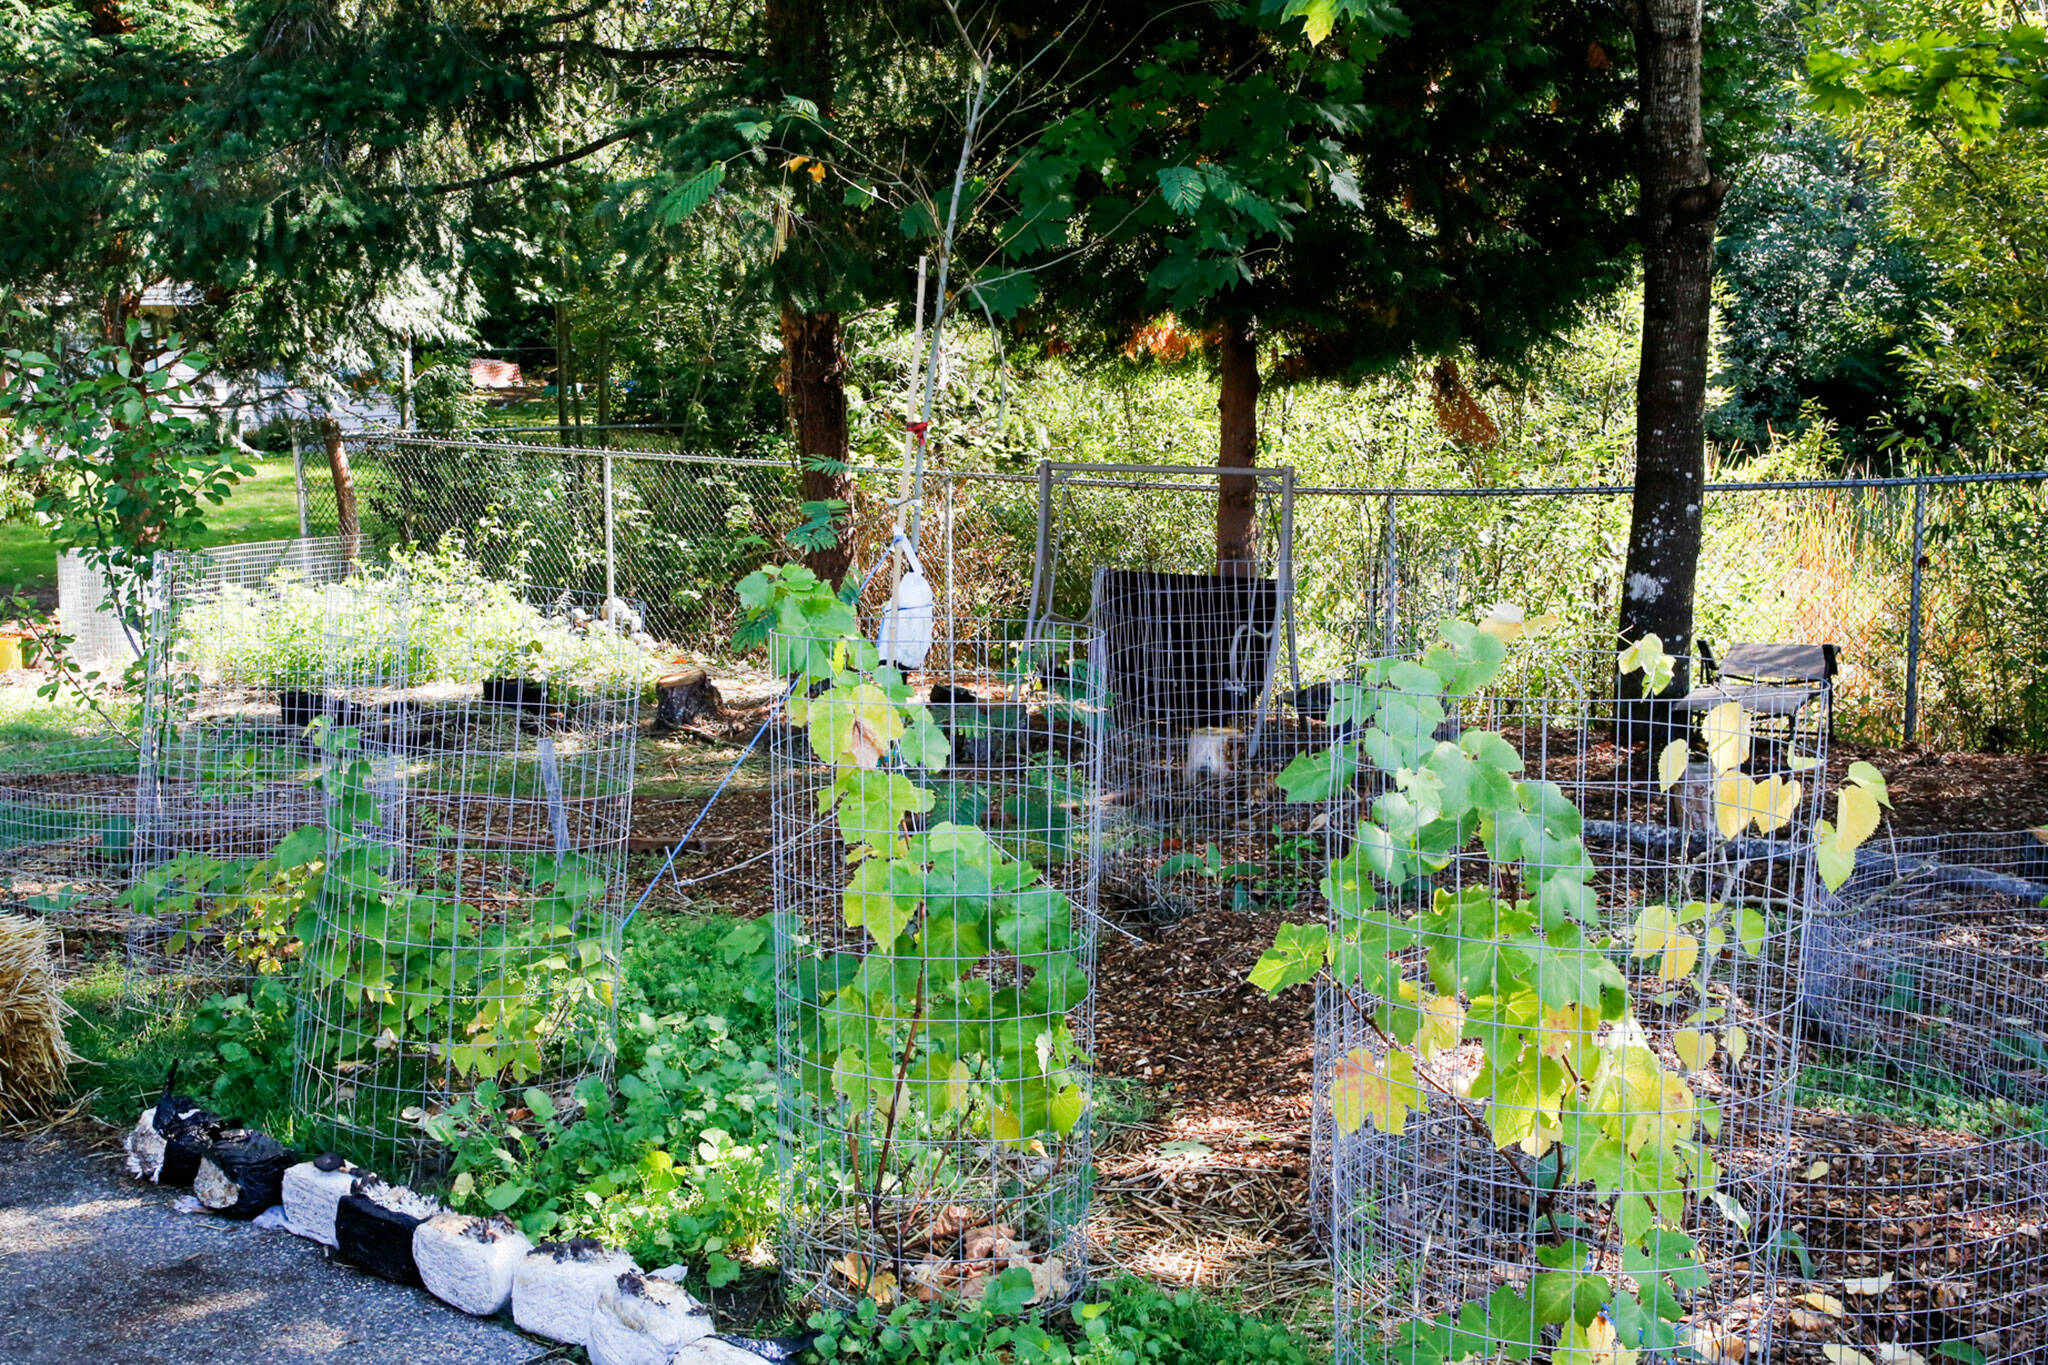 Saman Shareghi is organically farming in his parents' yard in Bothell. (Kevin Clark / The Herald)